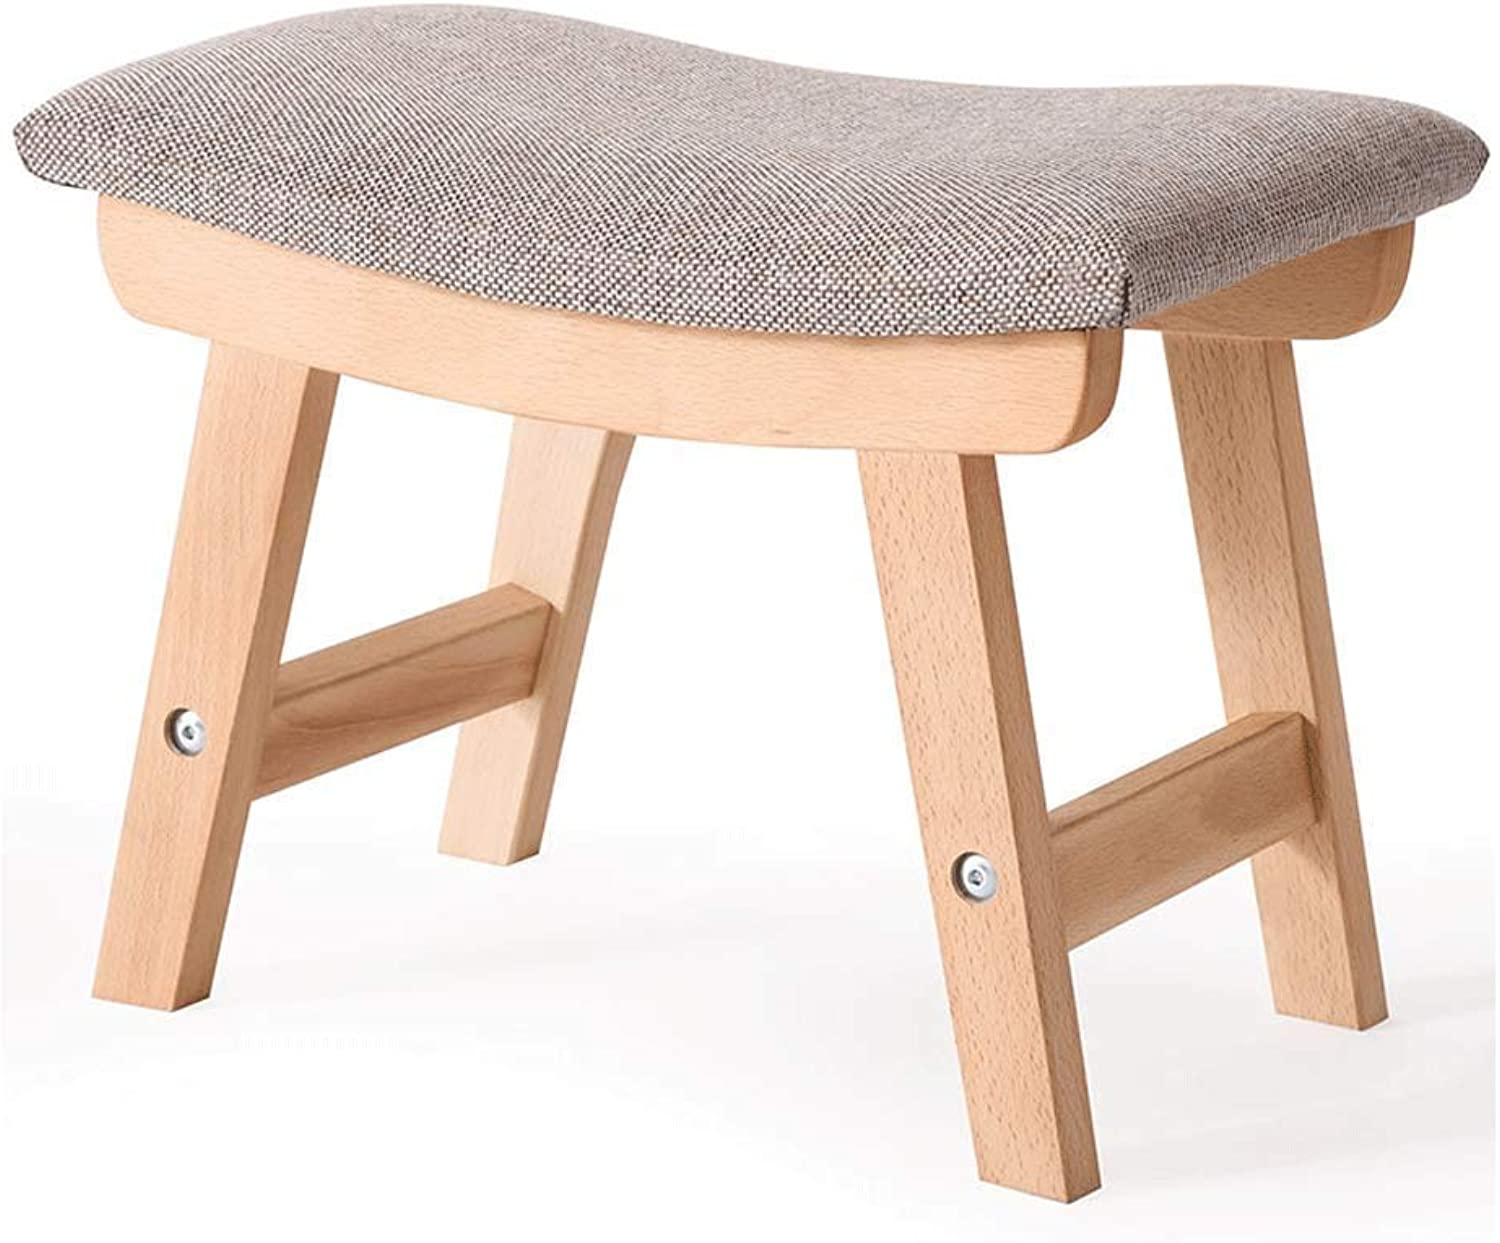 Small Stool Solid Wood Footstool Cloth Soft Surface Osman 38X24X29CM Cloth Haiming (color   A)